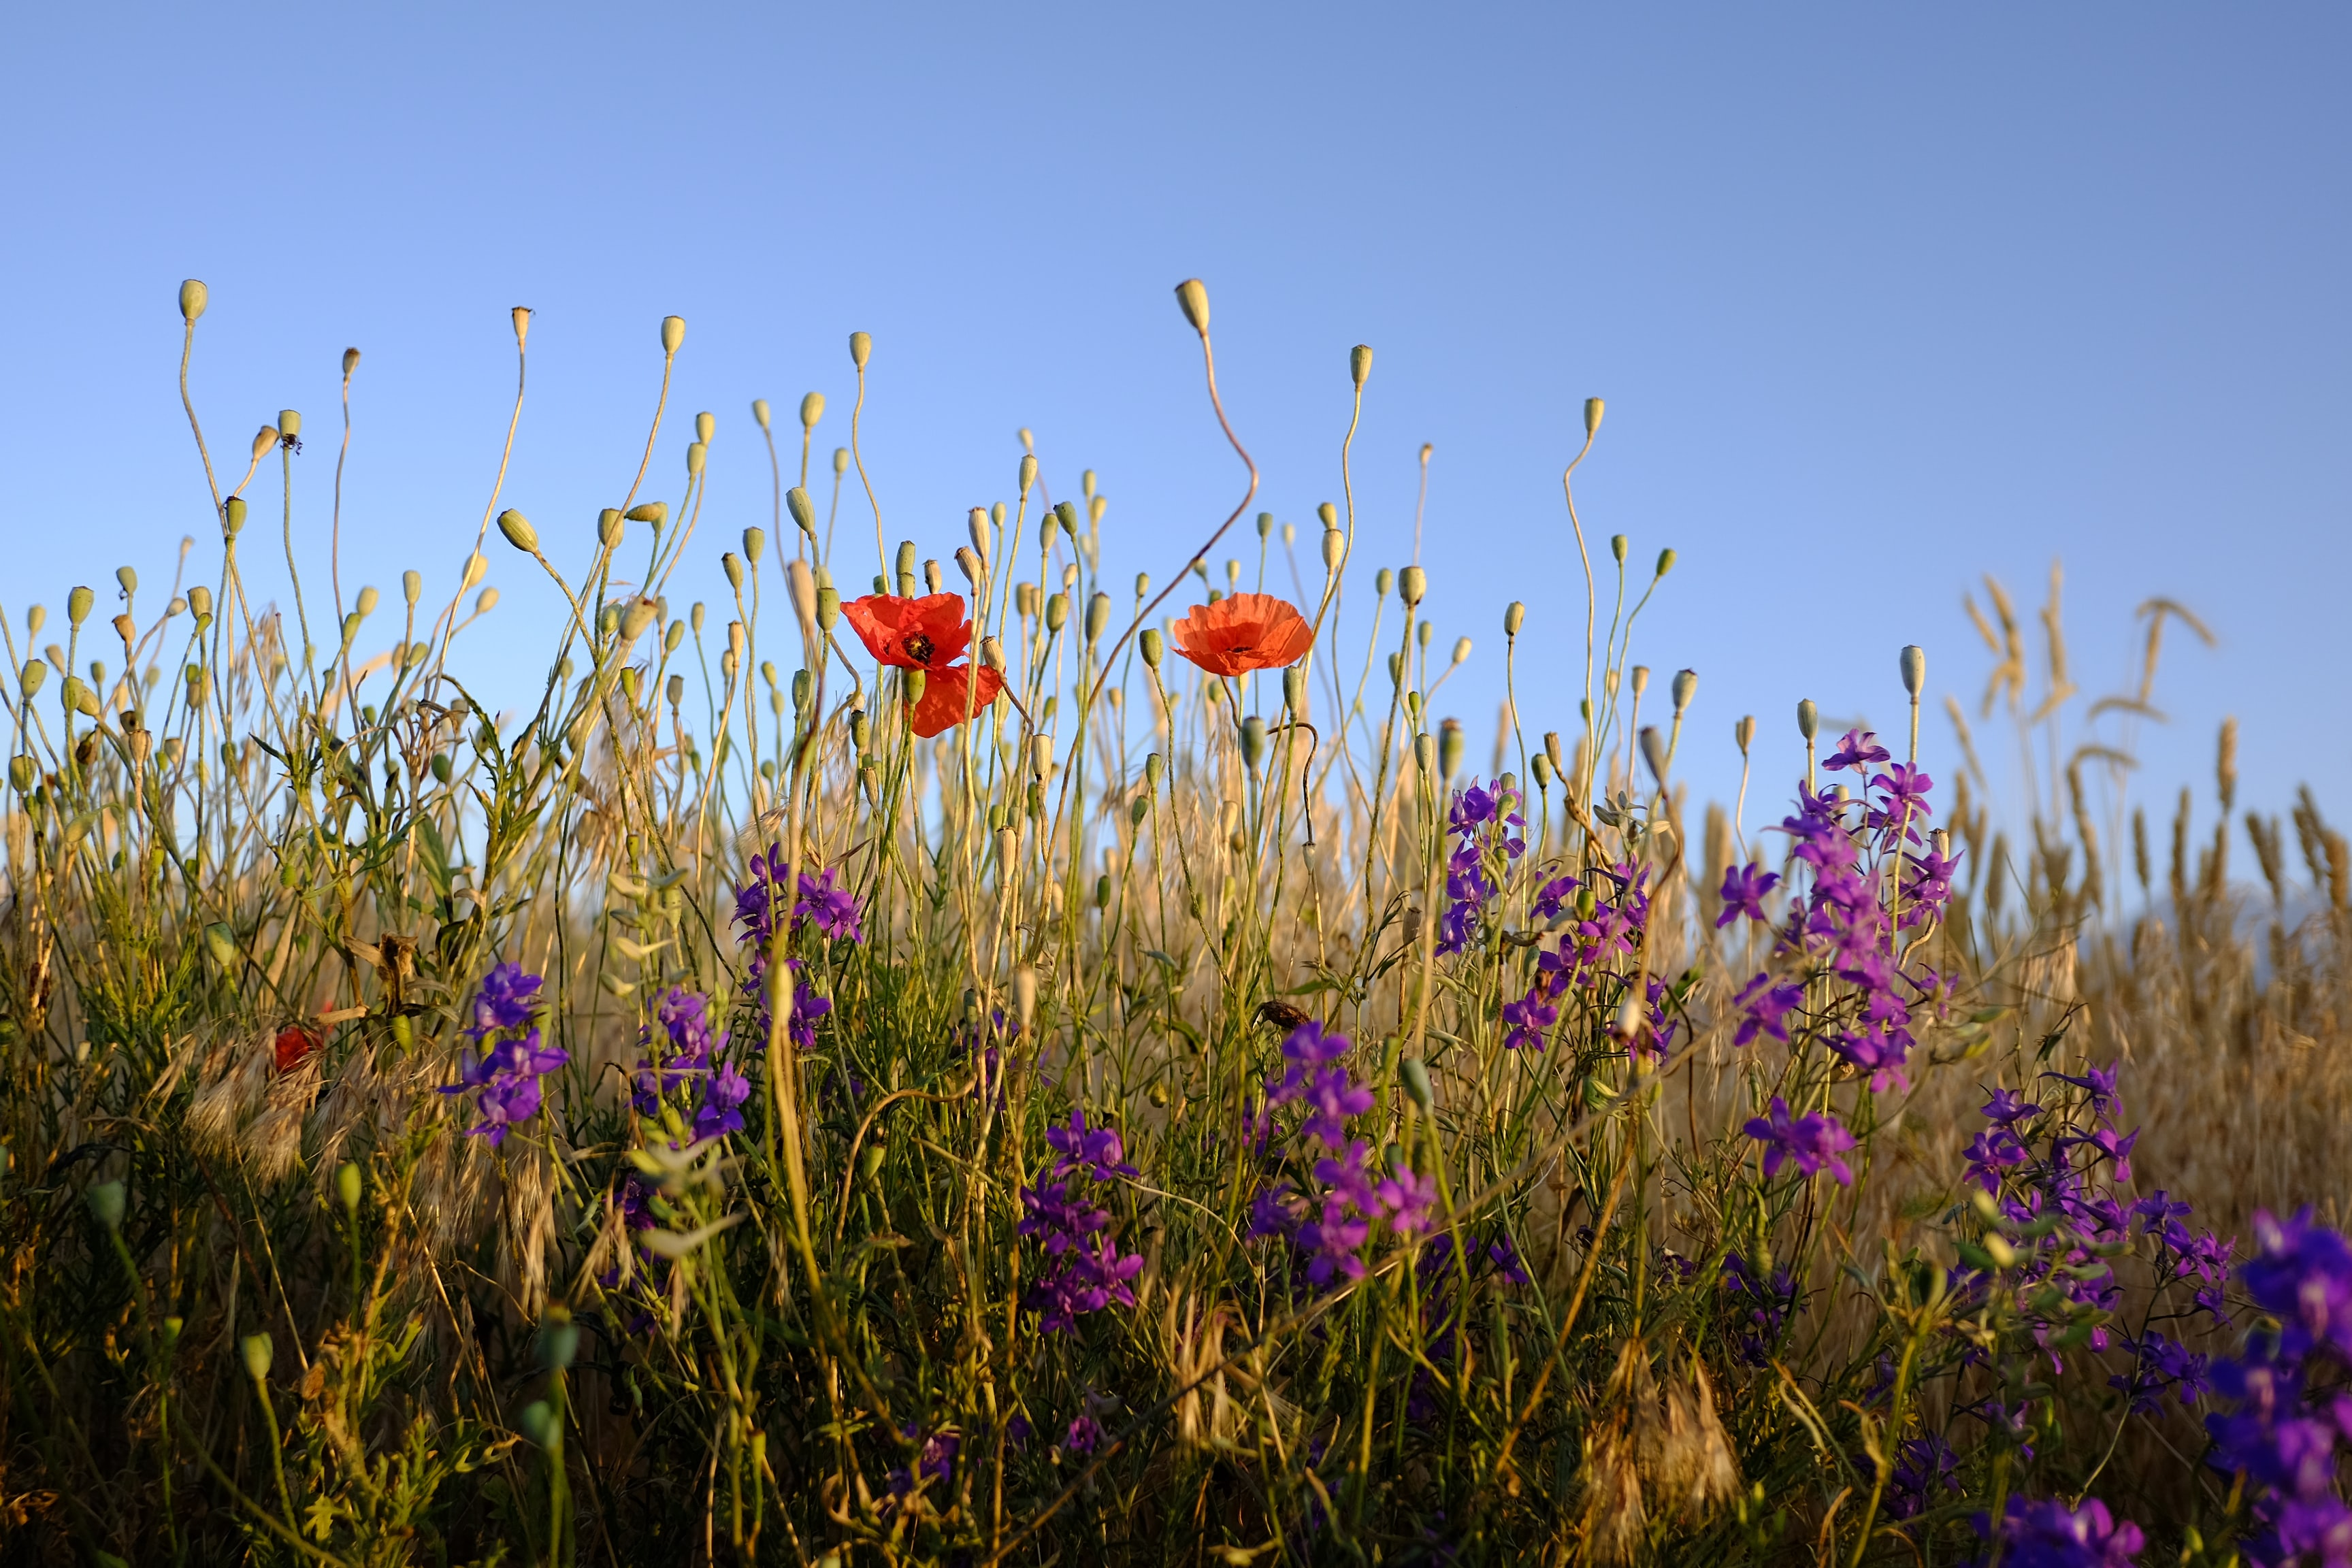 A meadow with red poppy flowers and small violet flowers among grass